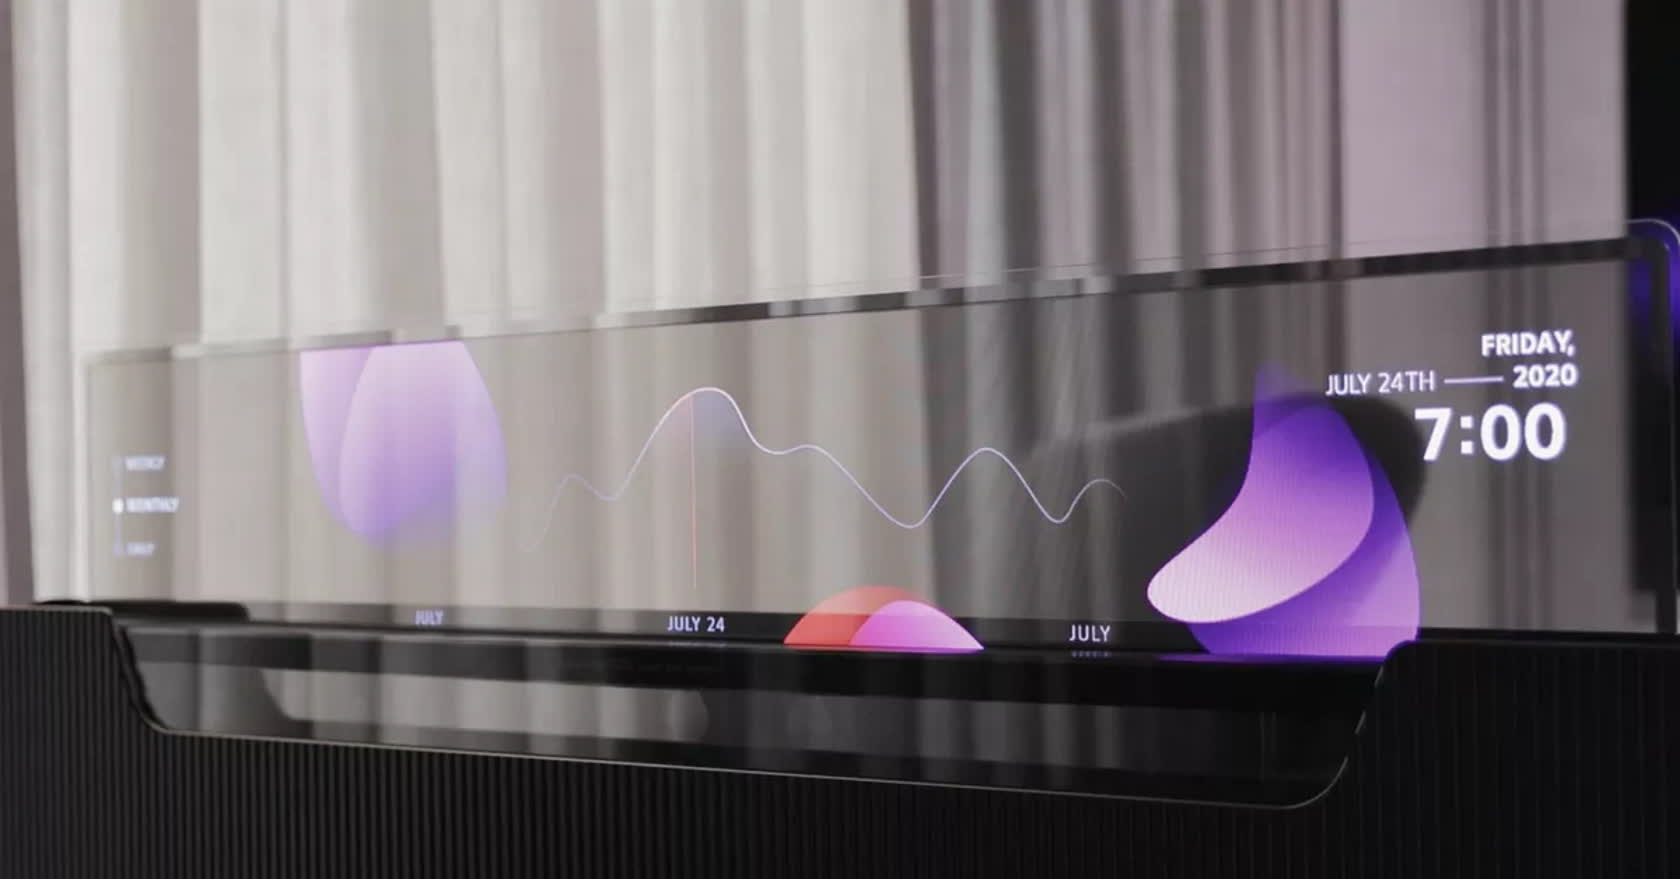 LG wants to place a 55-inch, transparent slide-up TV at the foot of your bed